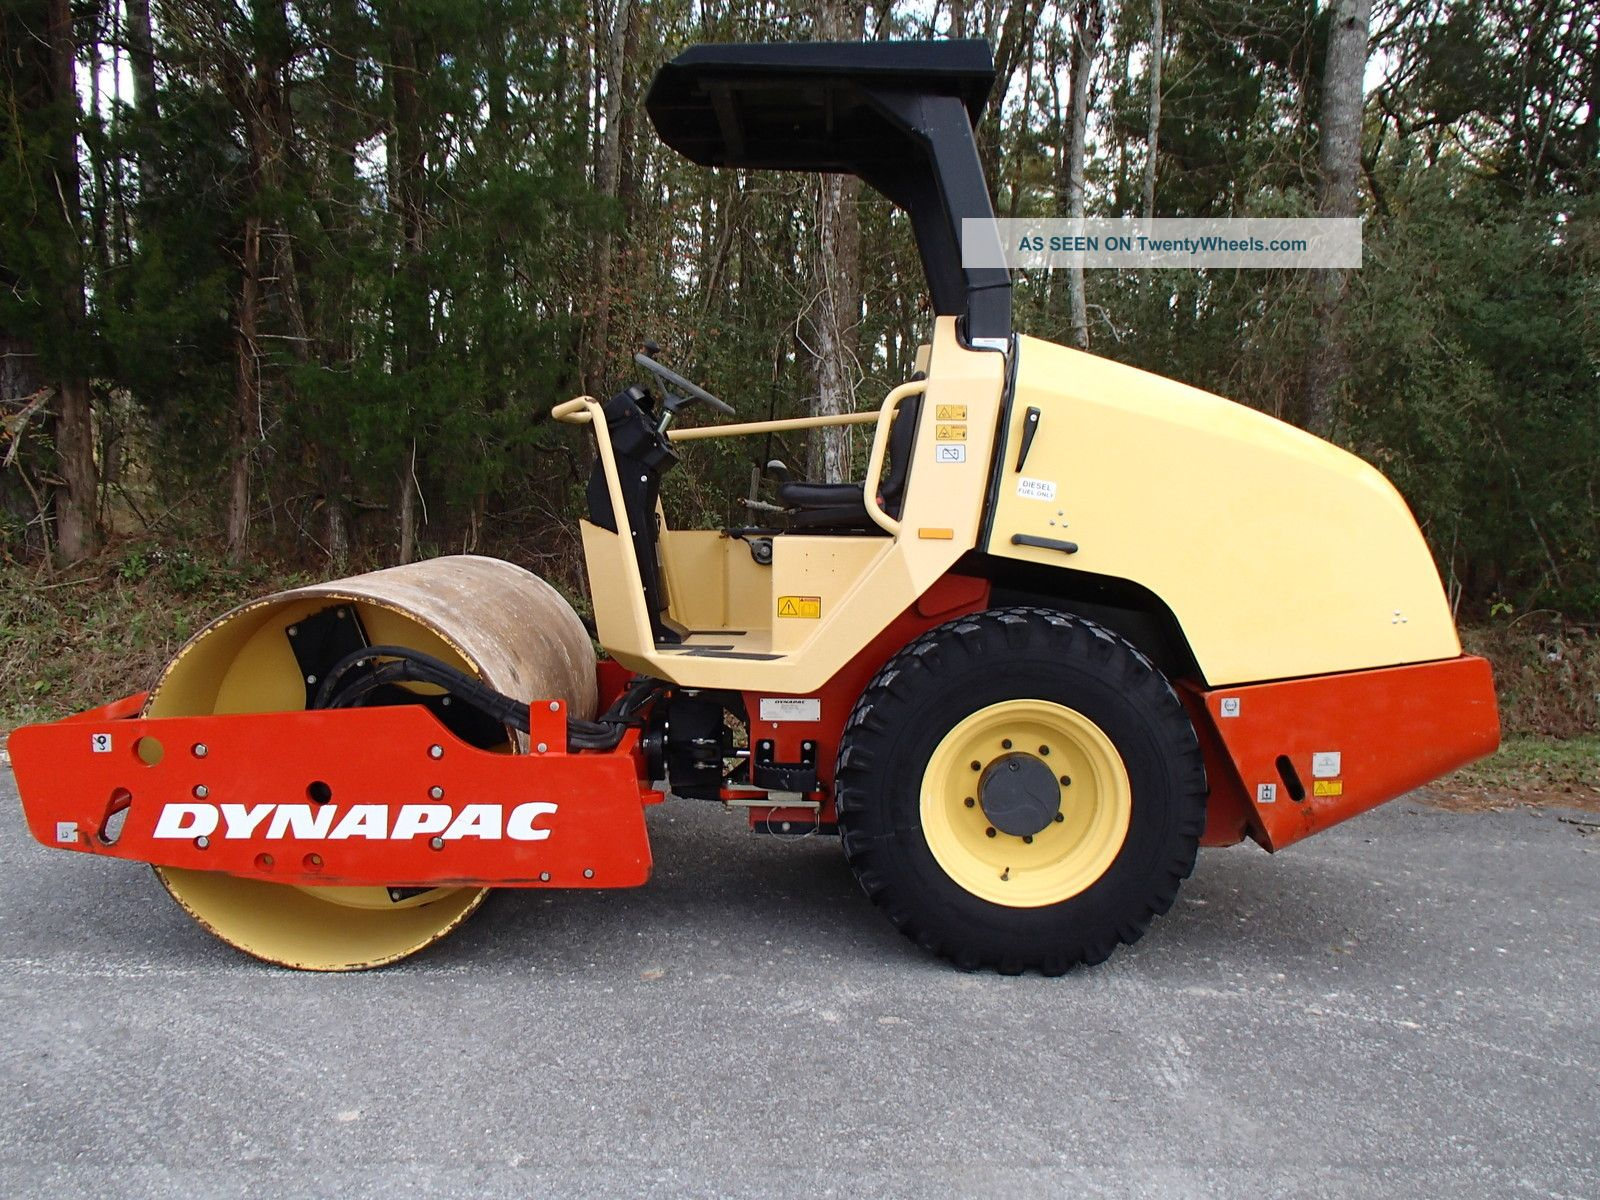 217 Hours 2008 Dynapac Ca144d Vibratory Single Drum Compactor,  Construction Compactors & Rollers - Riding photo